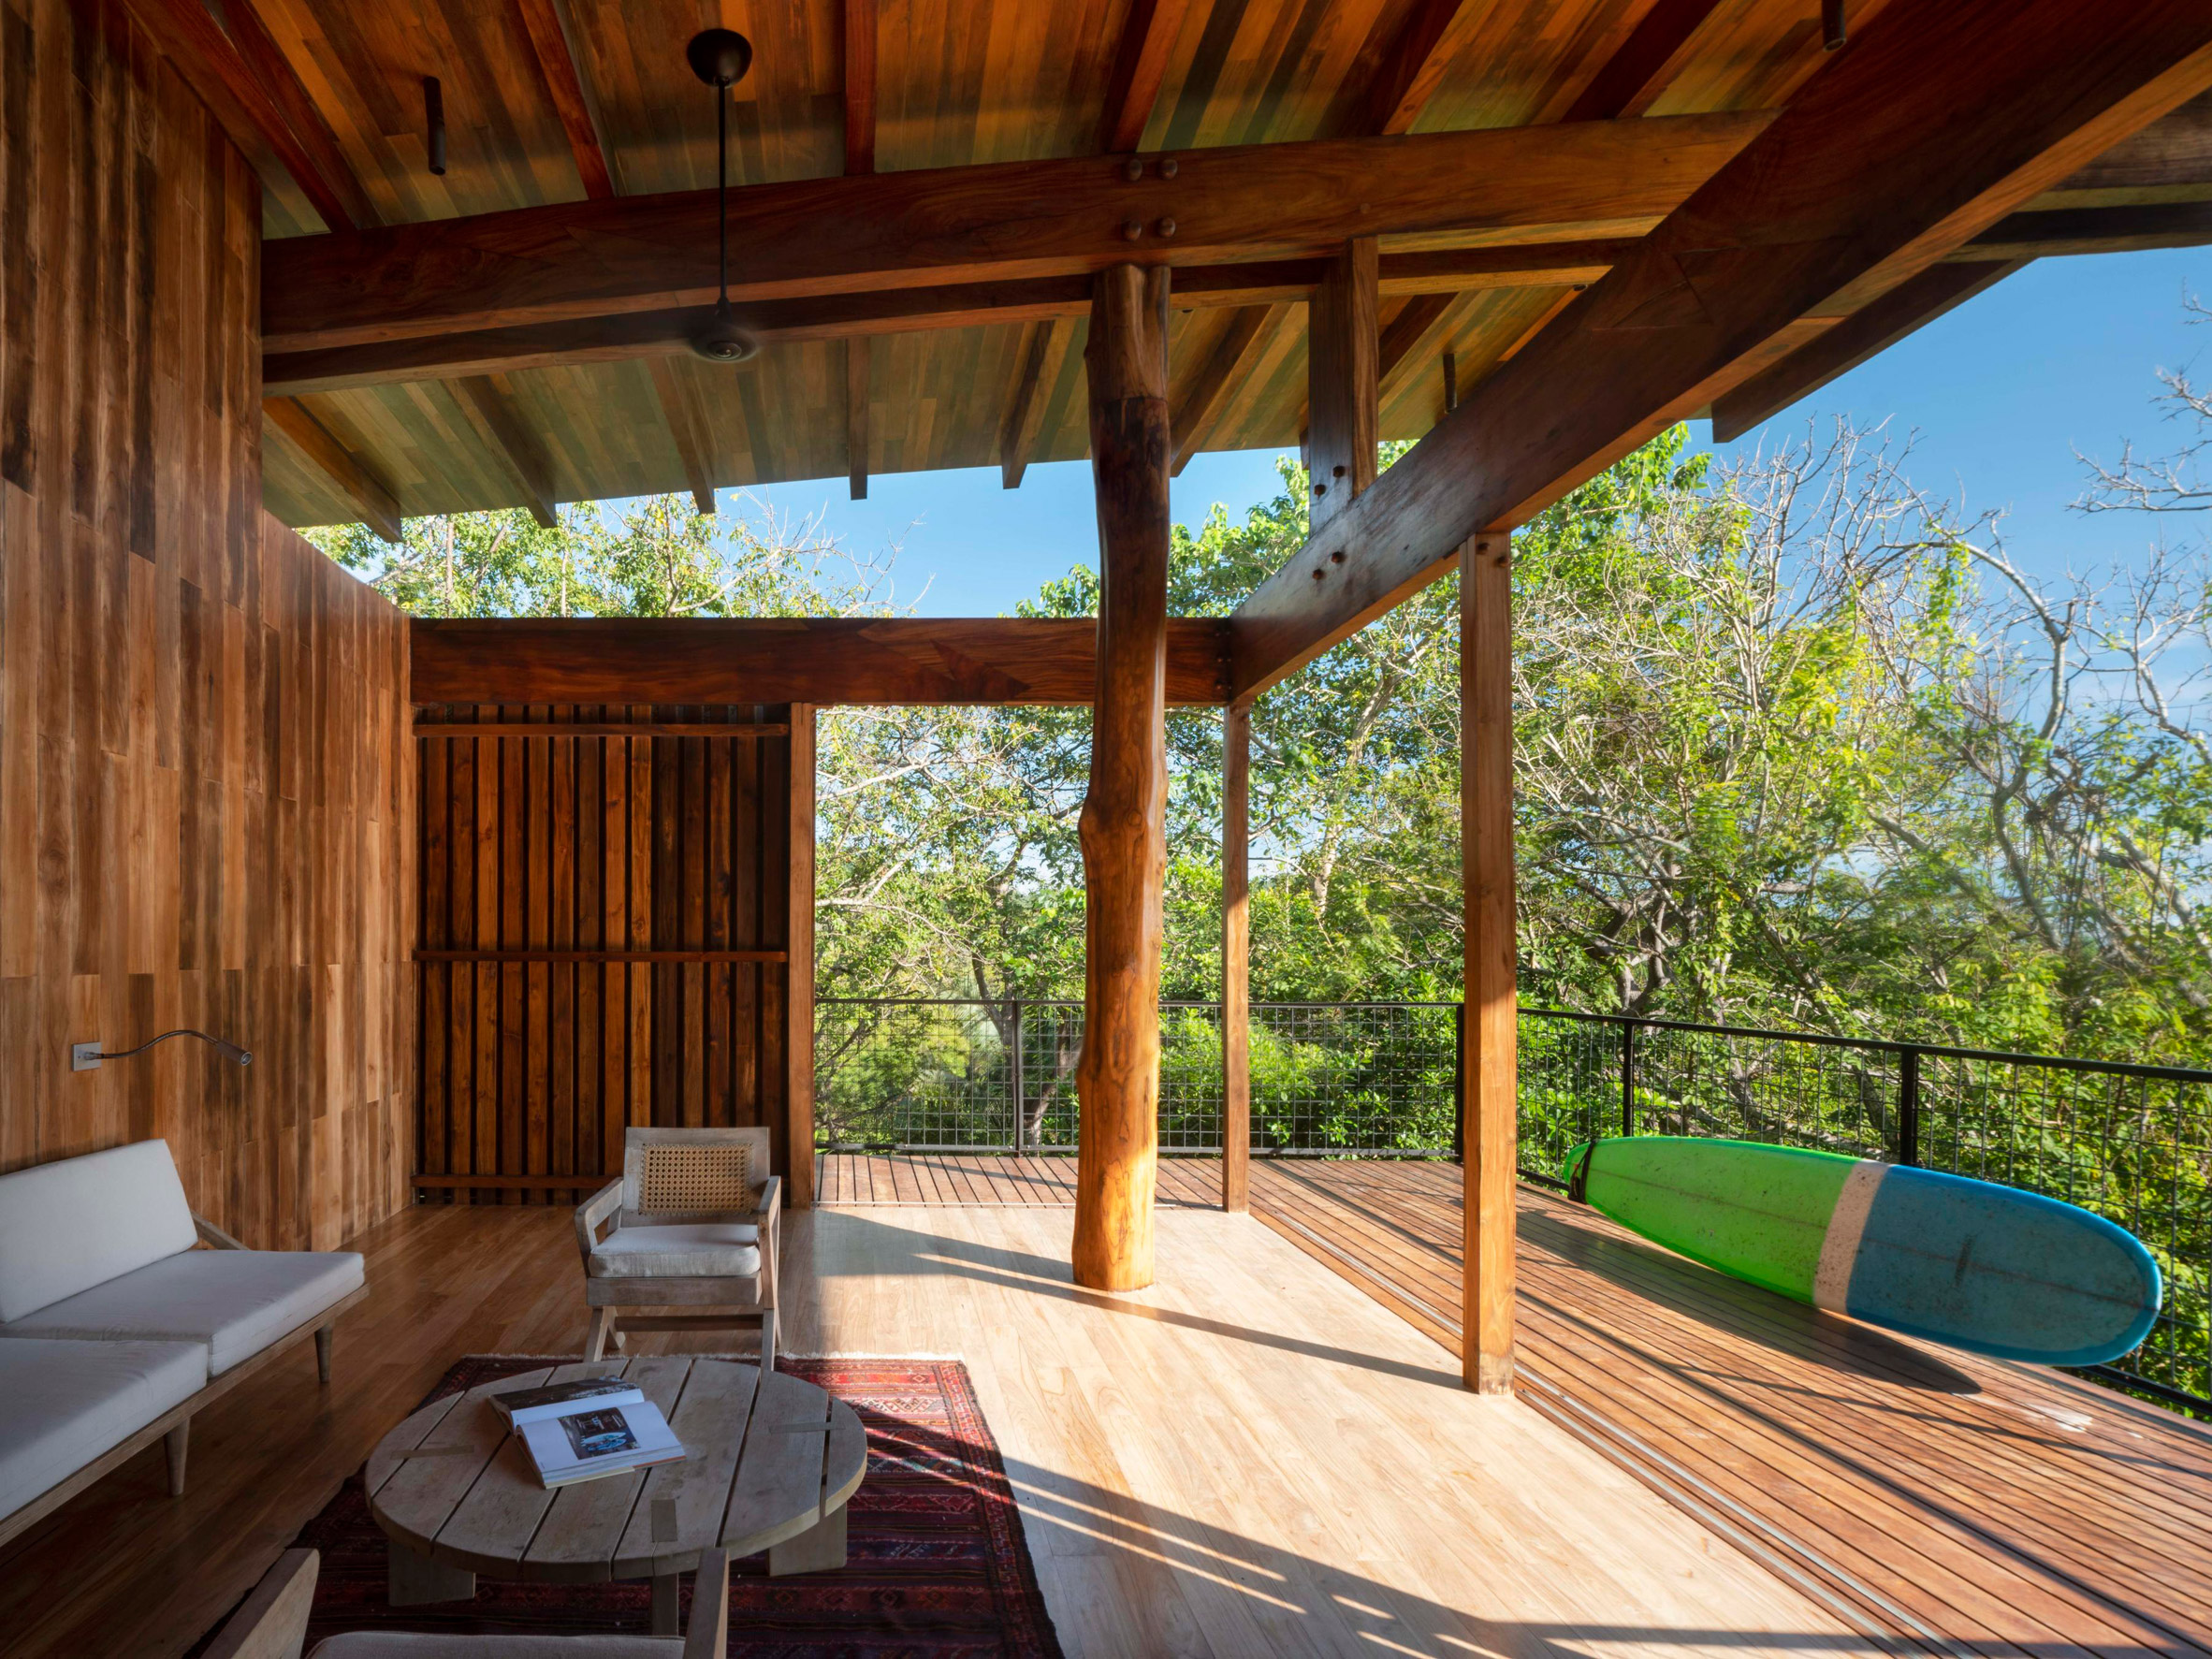 luxury, design, costa rica, caribbean sea, architecture, holiday, summer, travel, wooden house, home, relax, nature, landscape, chill out, beach, treehouse, vacation, top travel, destination, island